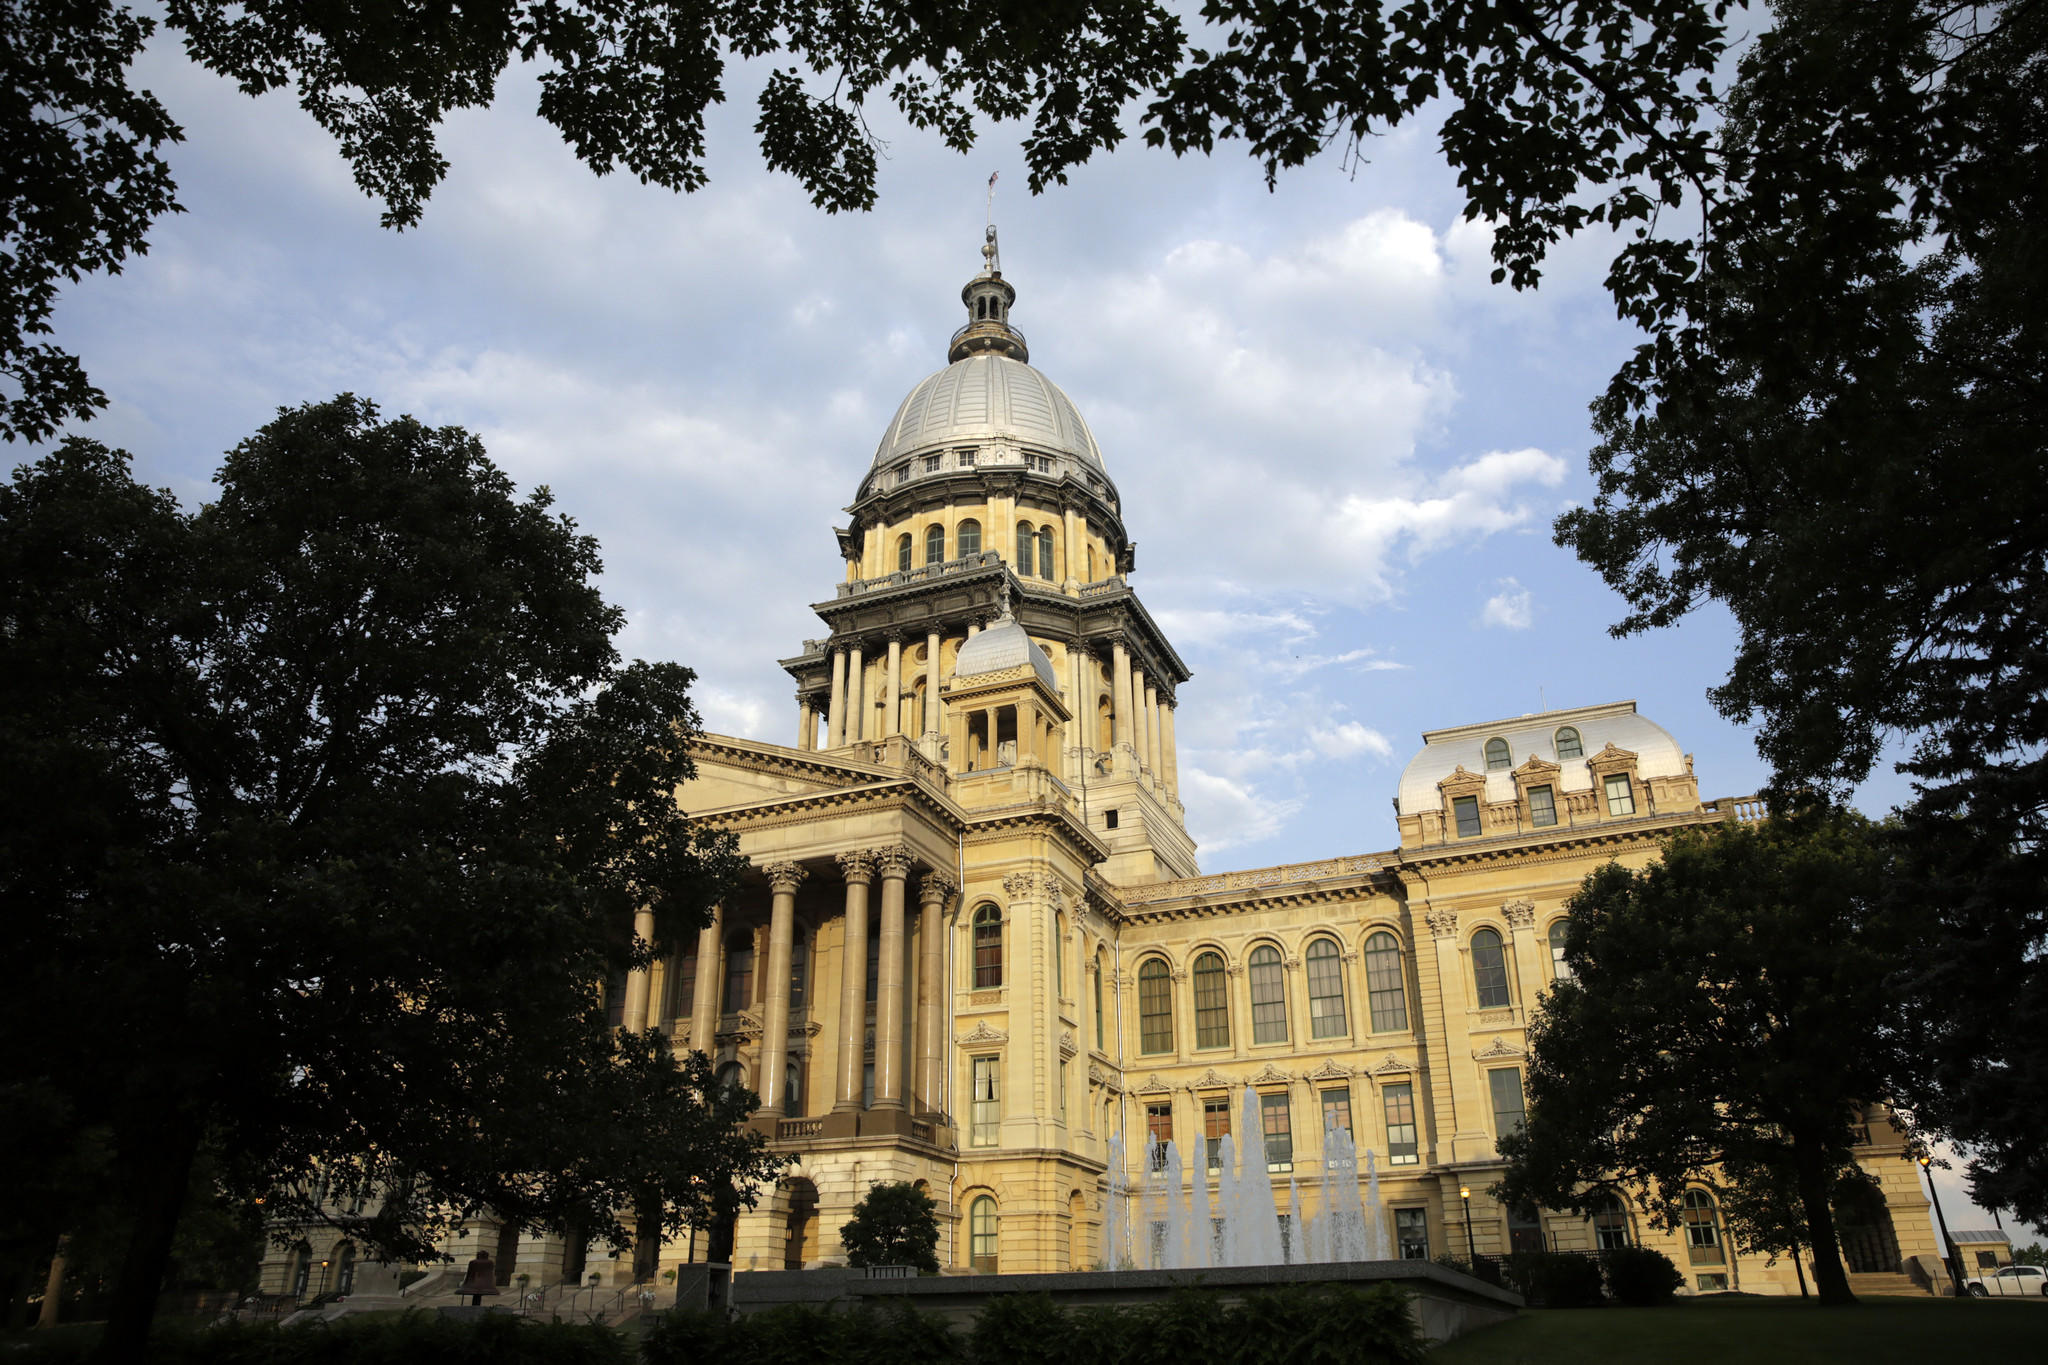 A file photo shows the Illinois State Capitol in Springfield.